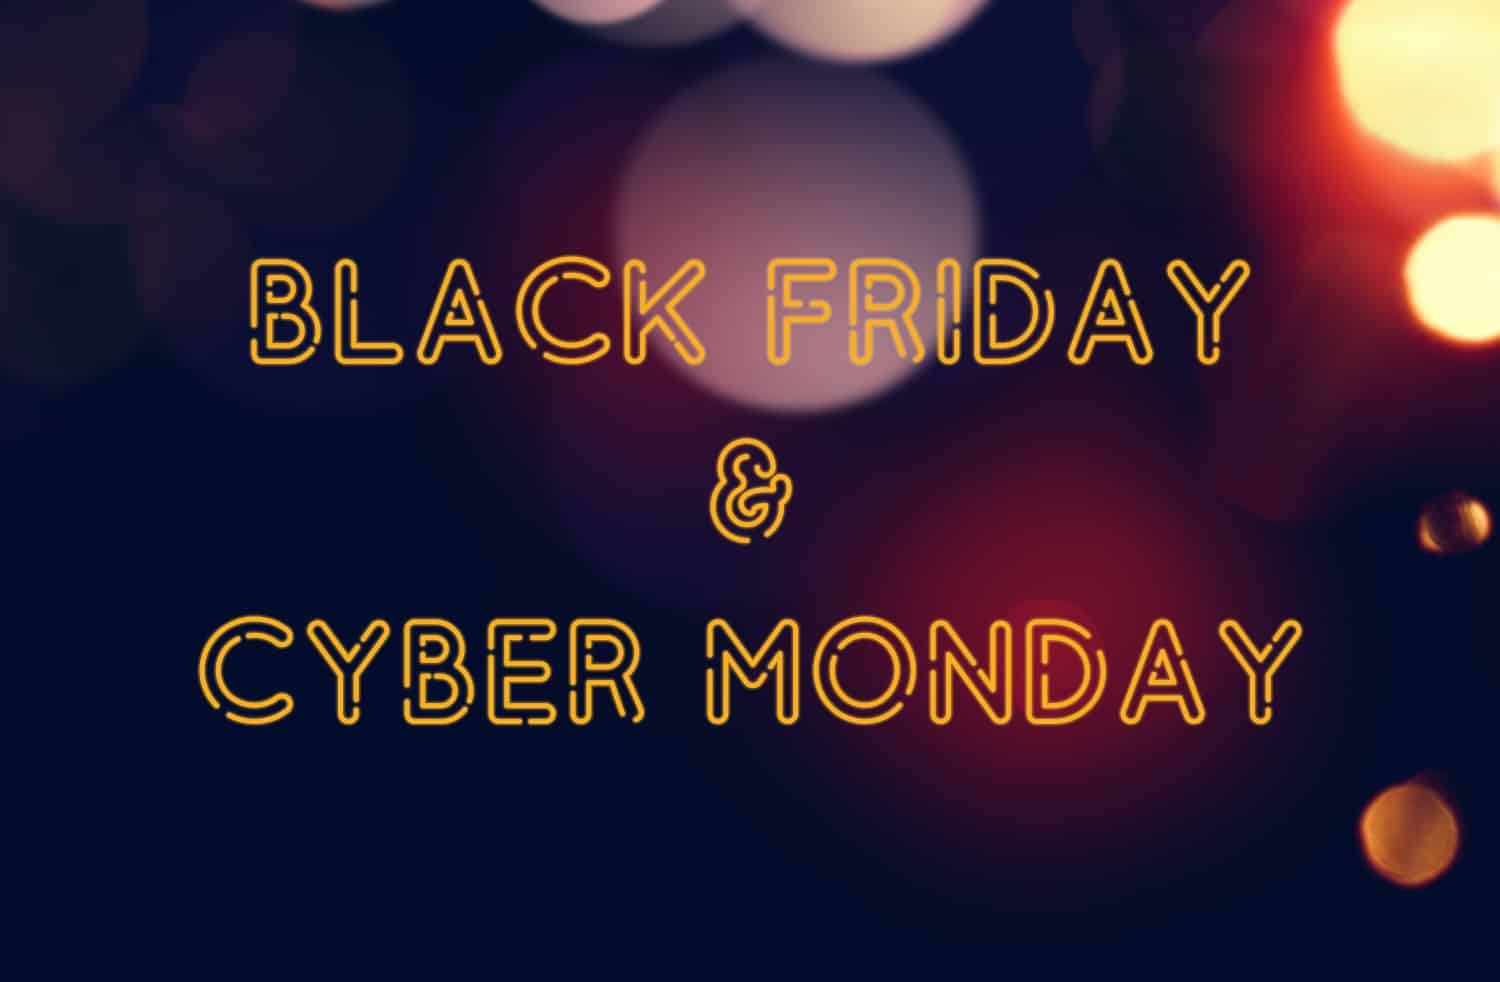 Black Friday 2019 e Cyber Monday 2019 tutte le date le offerte i vocucher di Amazon Ebay Apple